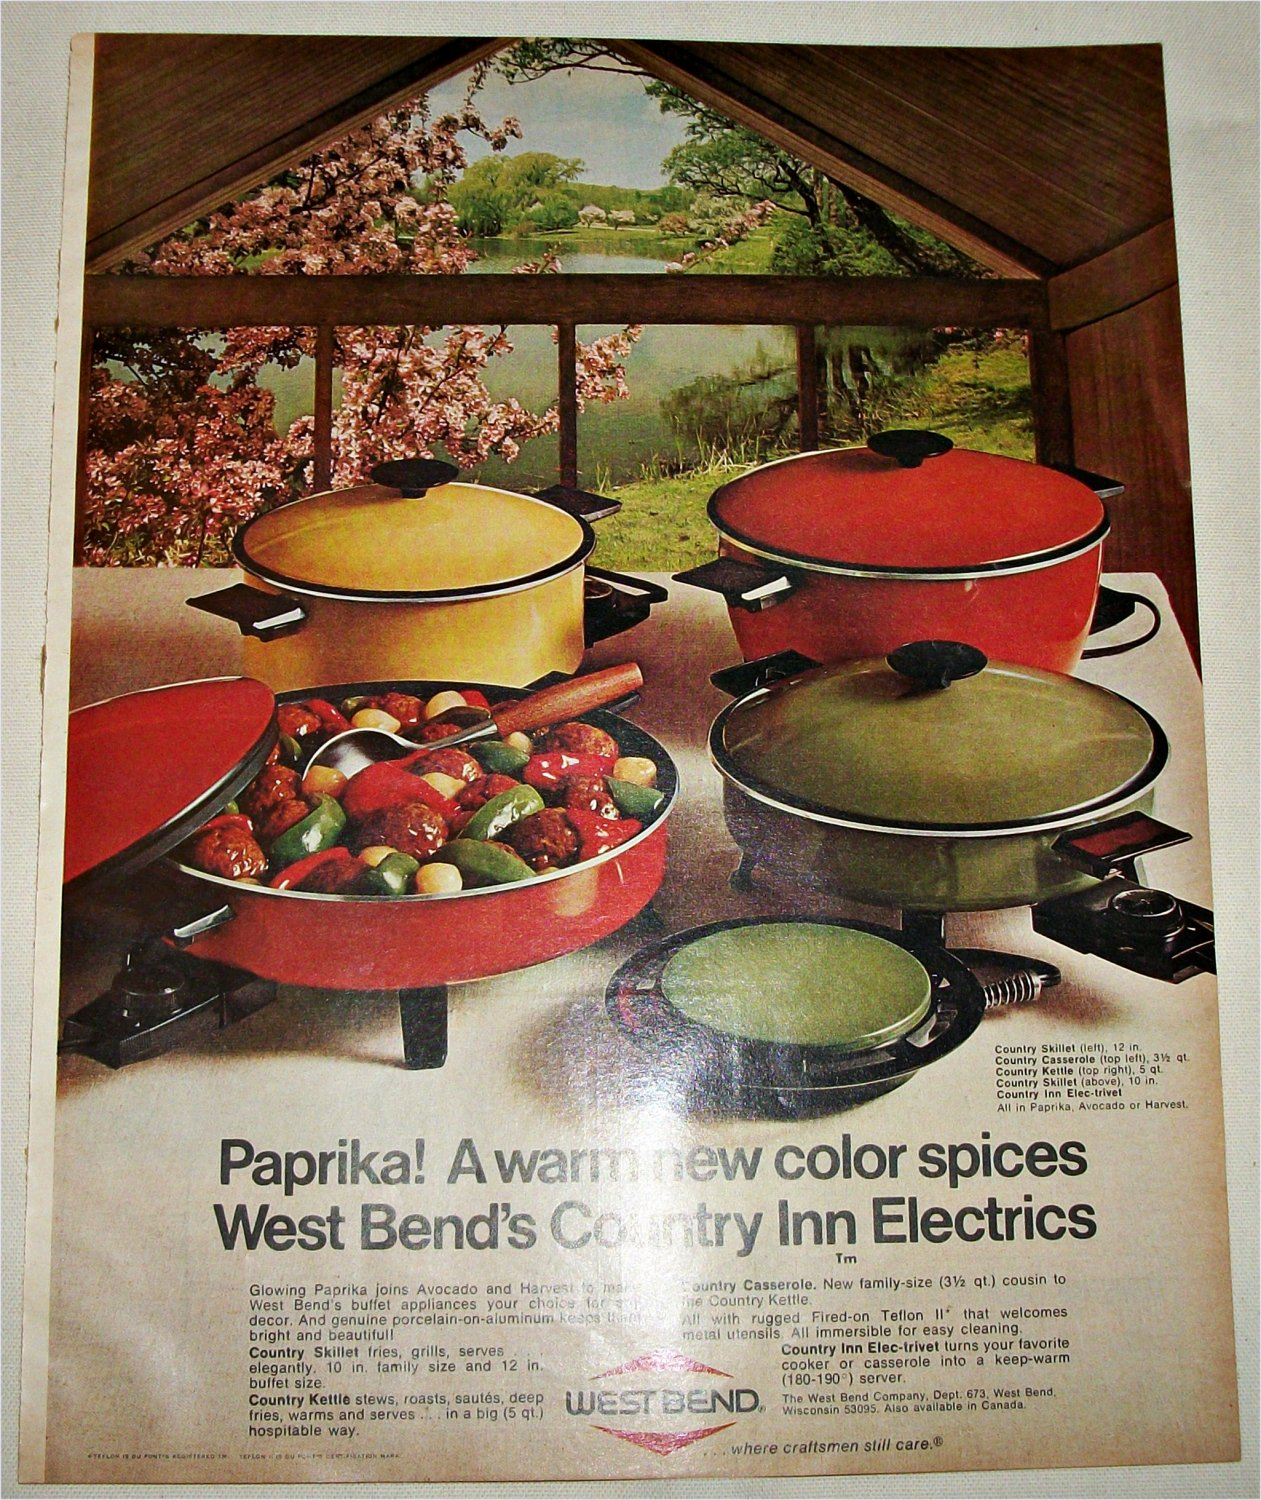 1970 West Bend Country Inn Electrics ad